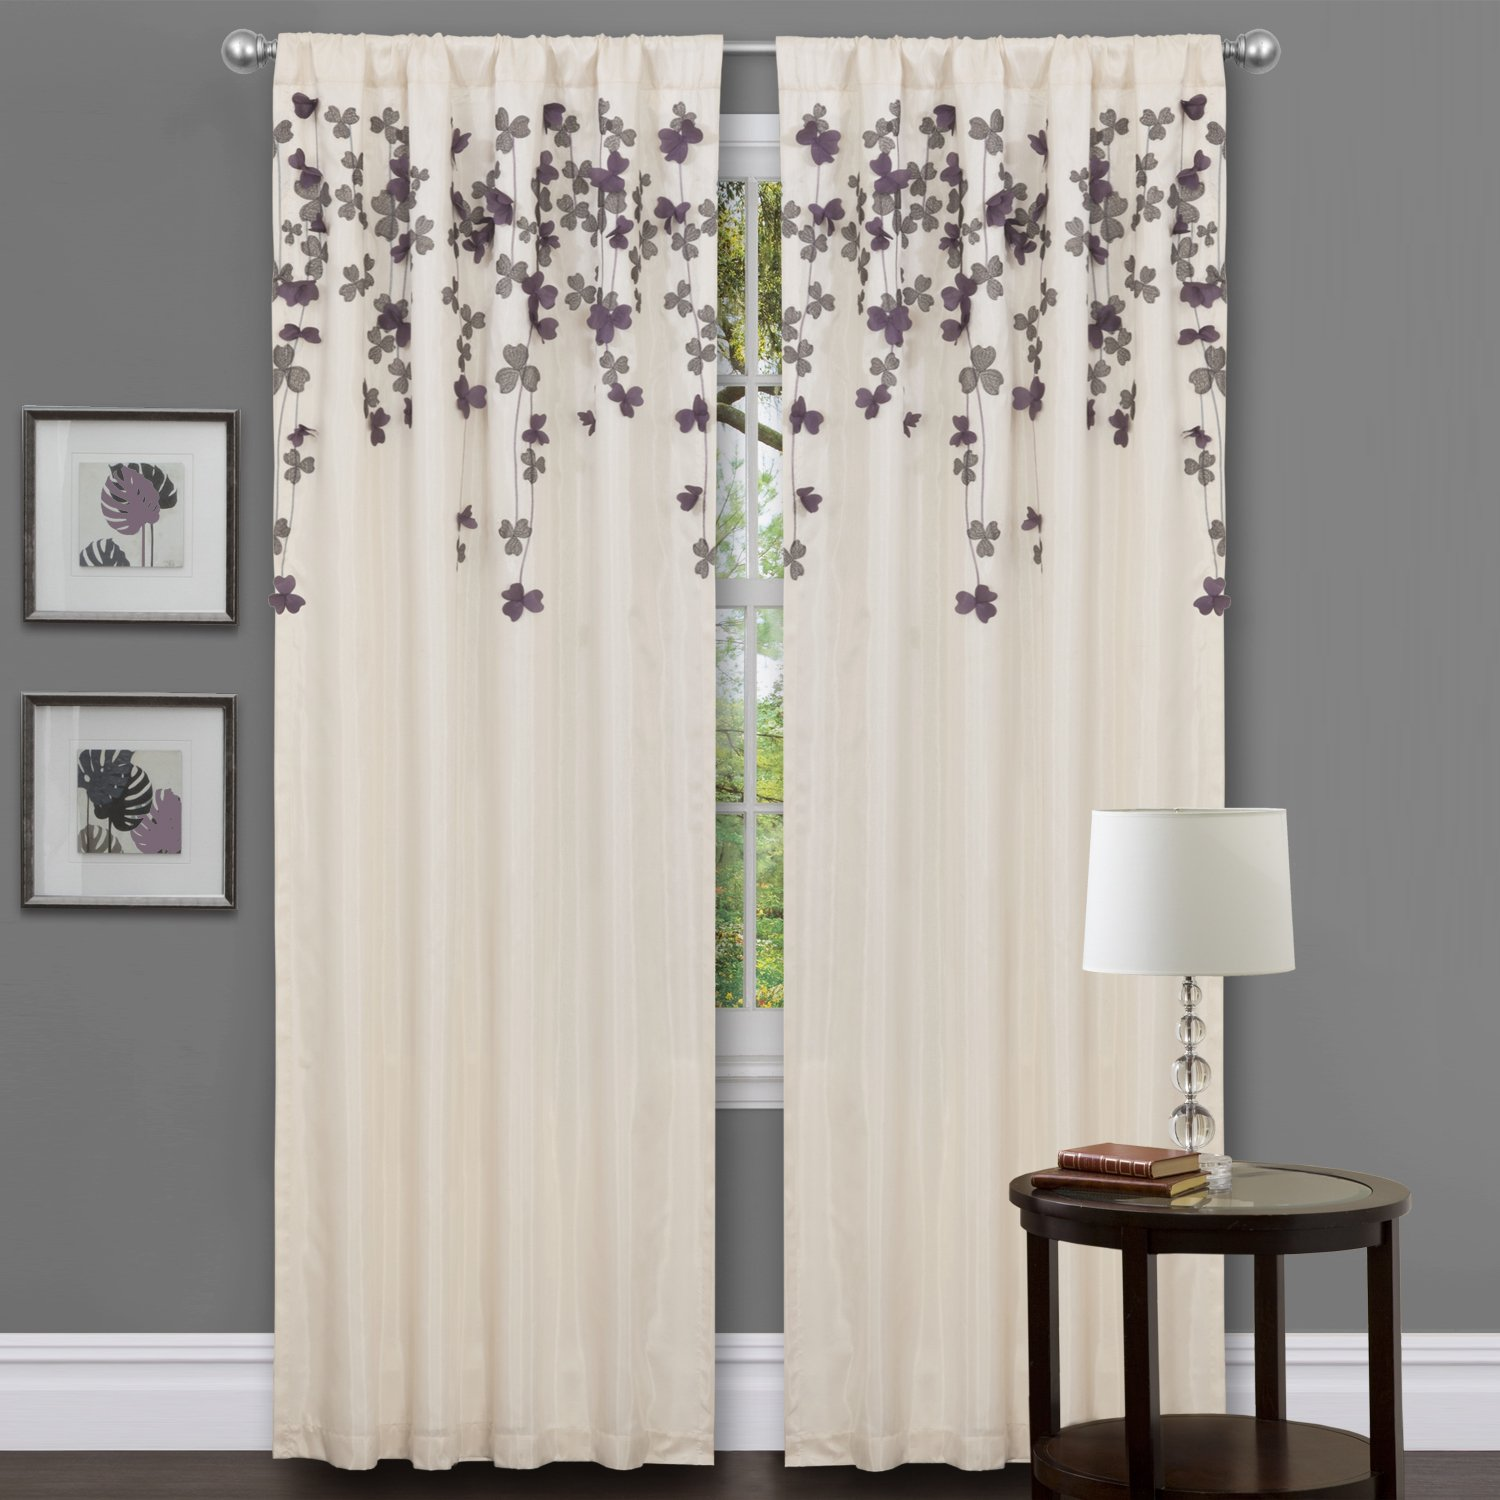 Amazon.com: Lush Decor Flower Drop Curtain Panel, Purple: Home U0026 Kitchen